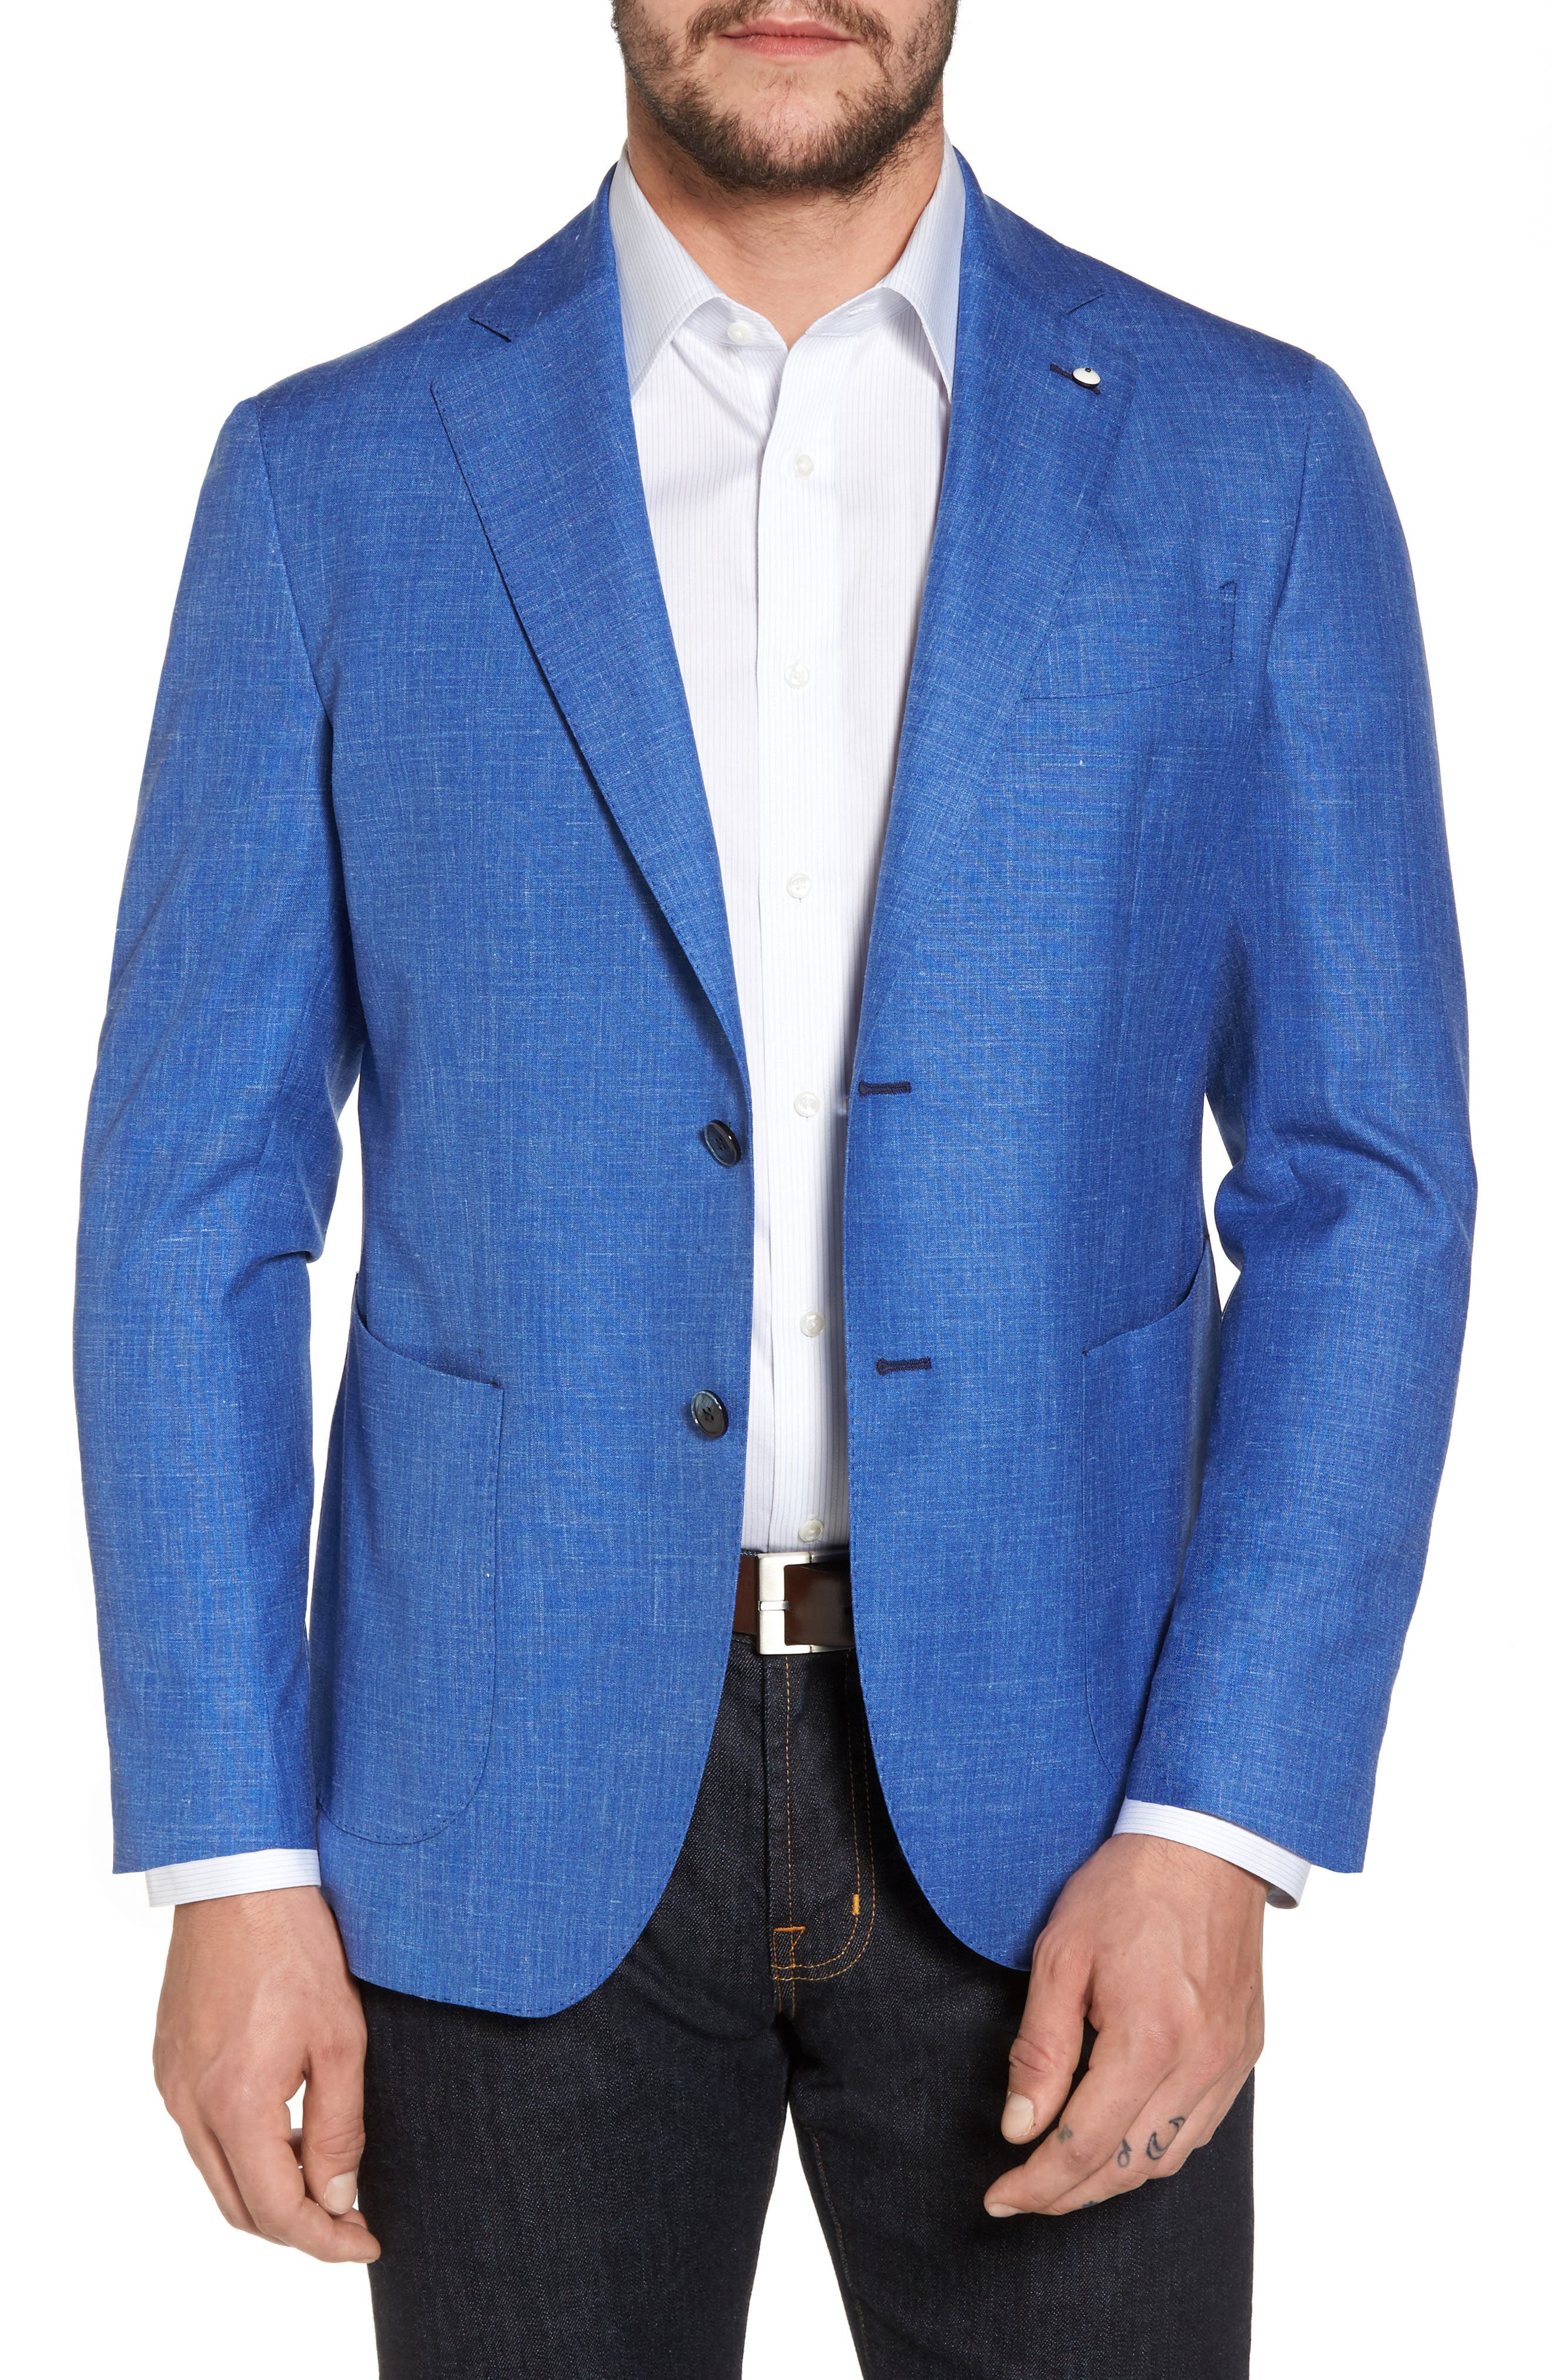 Classic Fit Wool Blend Blazer,                         Main,                         color, Navy